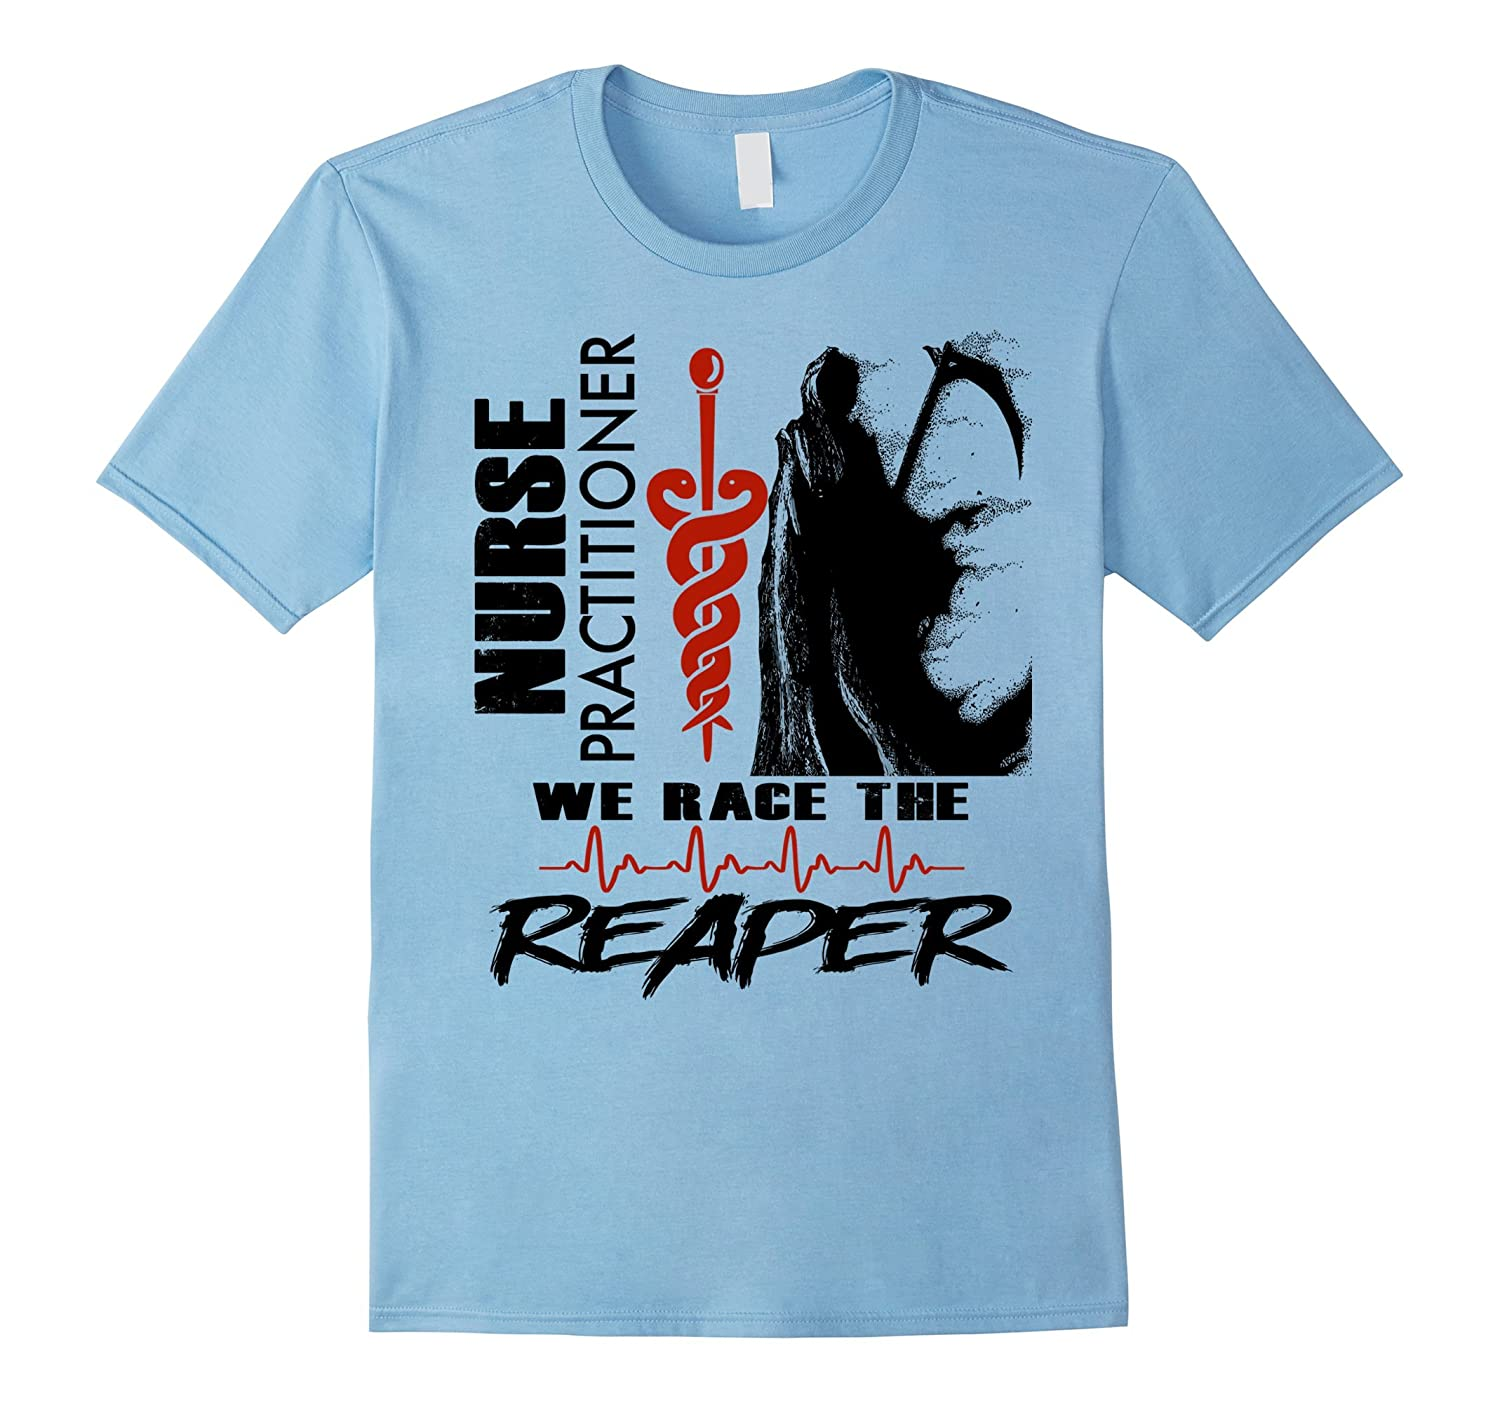 Nurse Practitioner – We race the Reaper